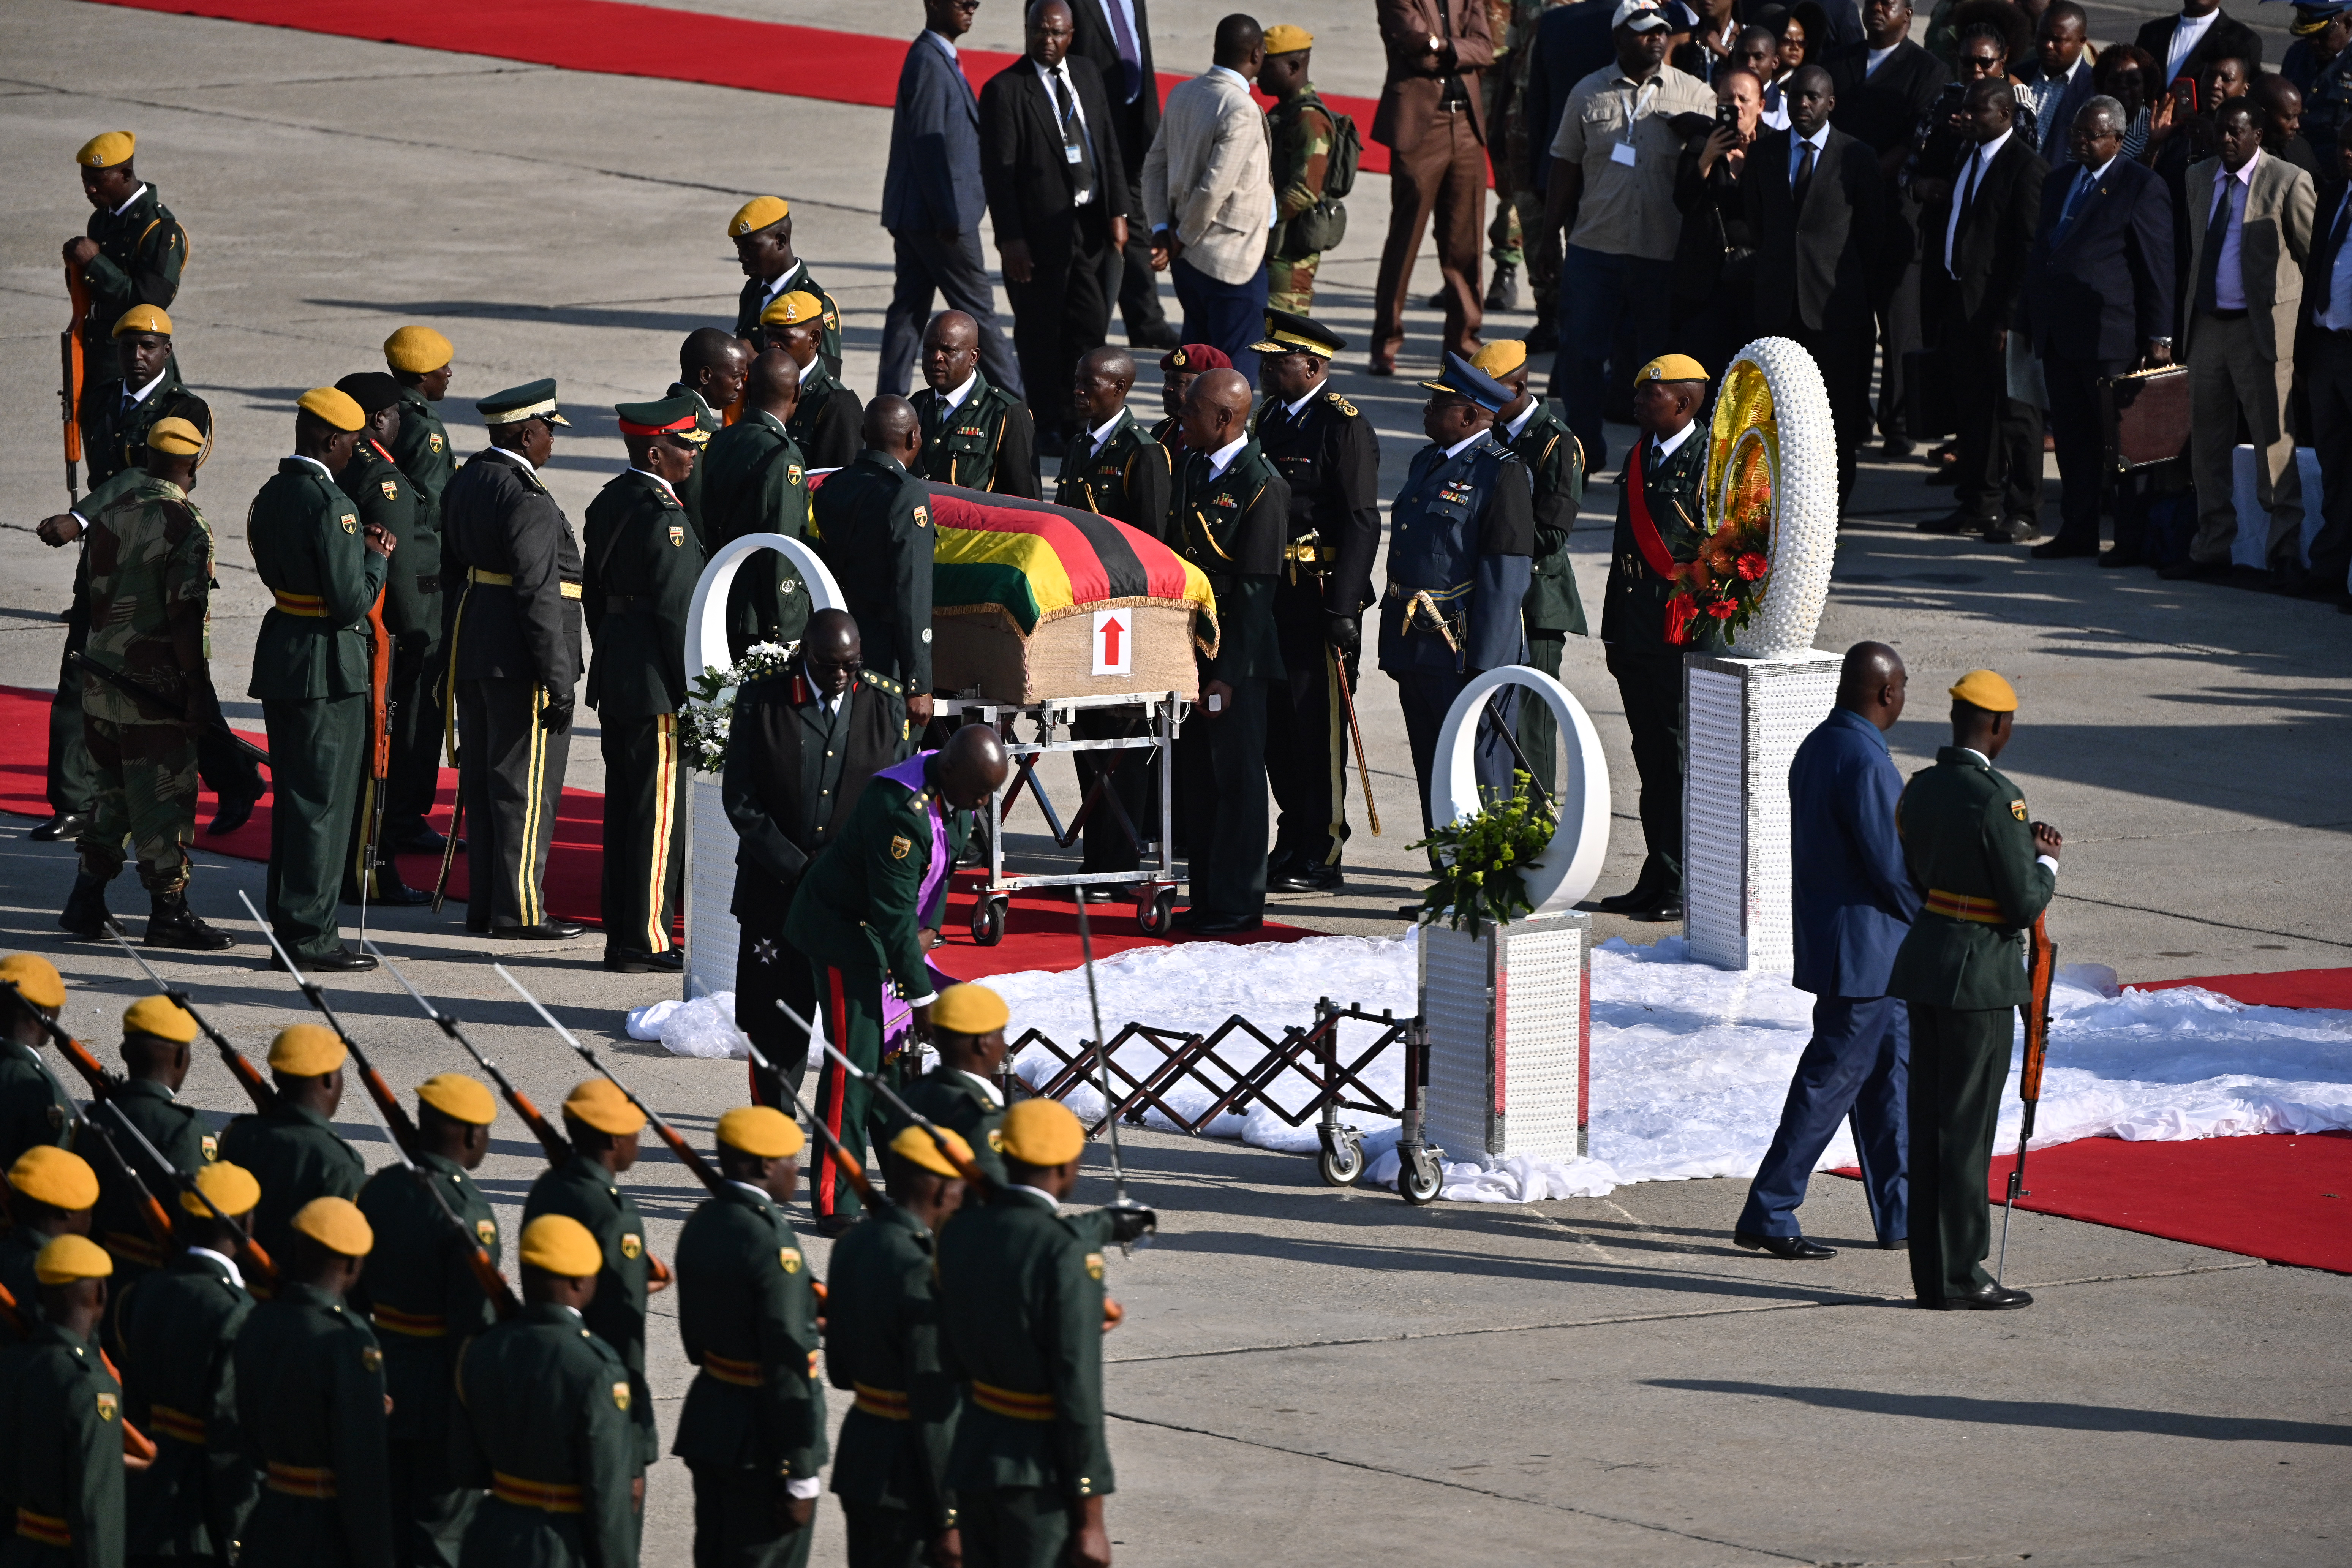 Pall bearers stand by the casket of late Zimbabwean President Robert Mugabe as its arrives in Harare on September 11, 2019.